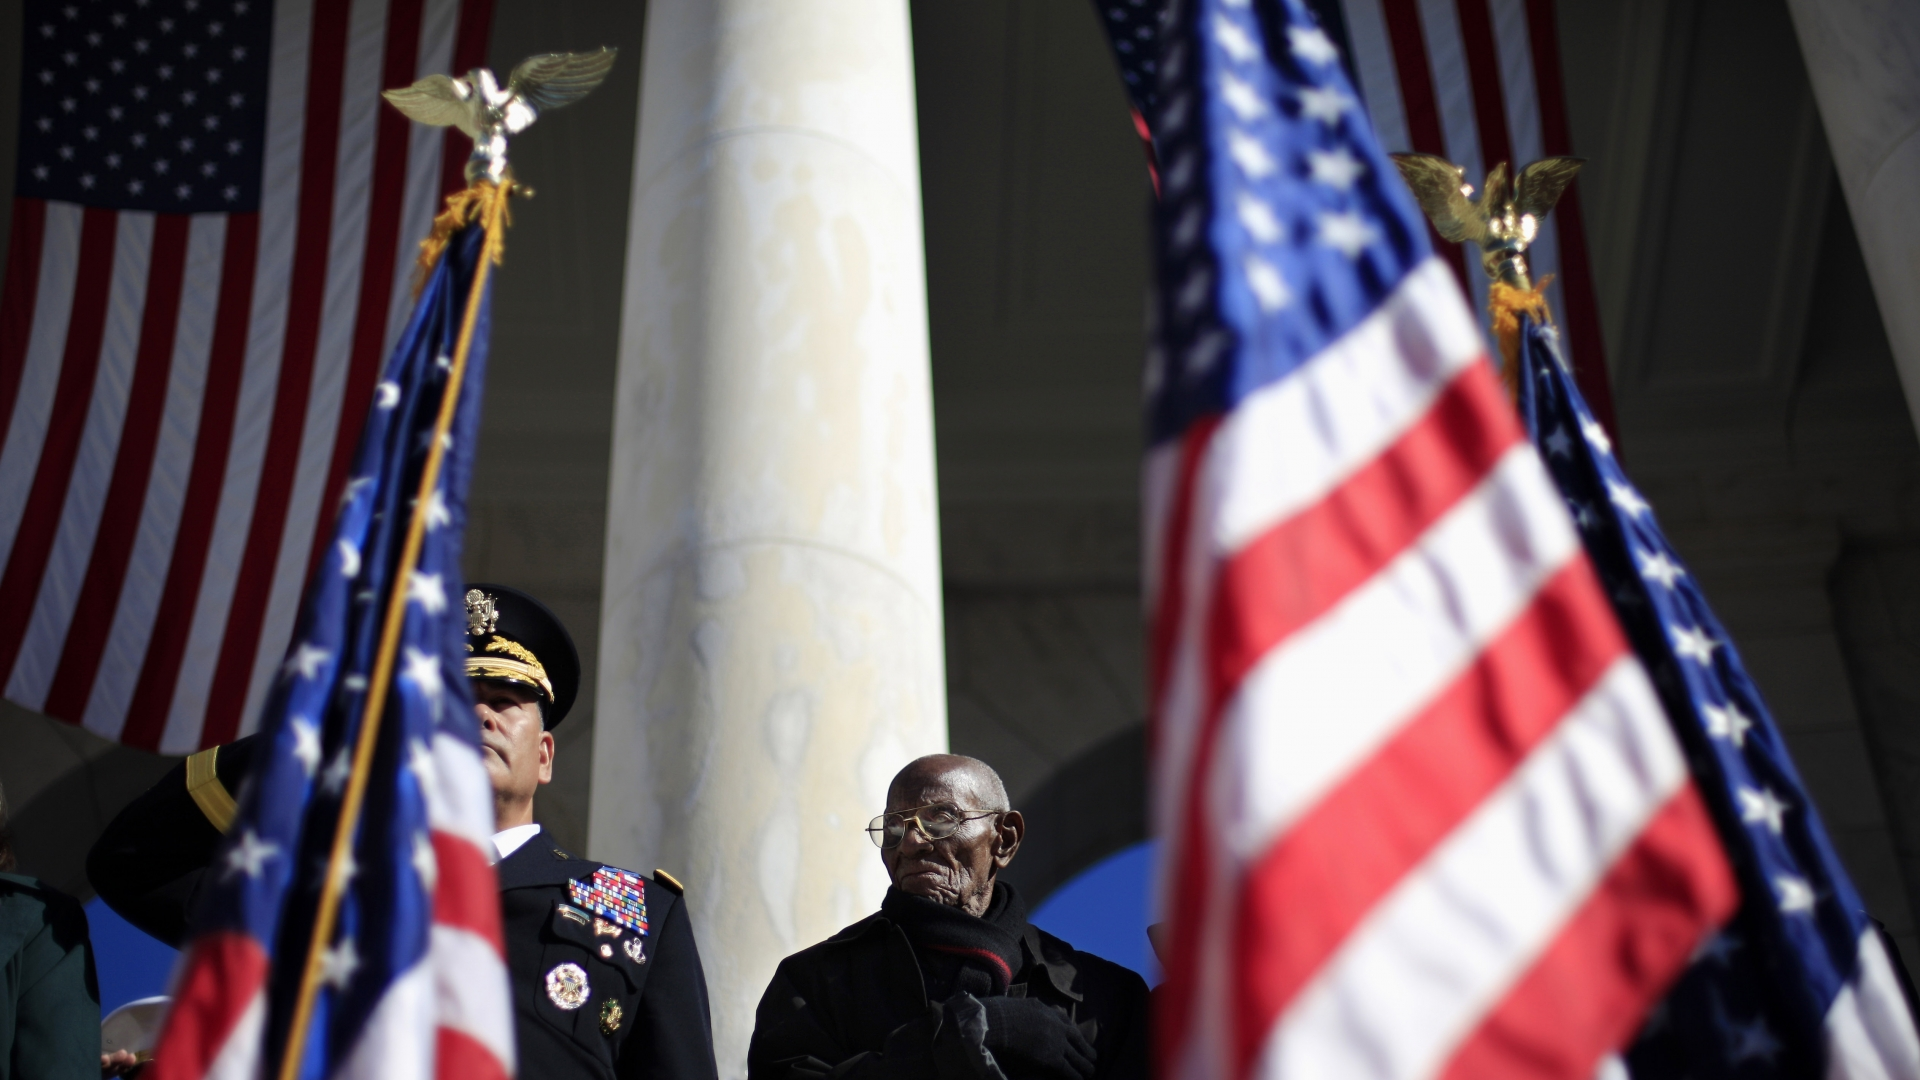 World War II veteran, Richard Overton, standing for the presentation of the colors during Veteran Day ceremony in the Arlington National Cemetery Amphitheater, 2013. (Credit: Pablo Martinez Monsivais/AP Photo)